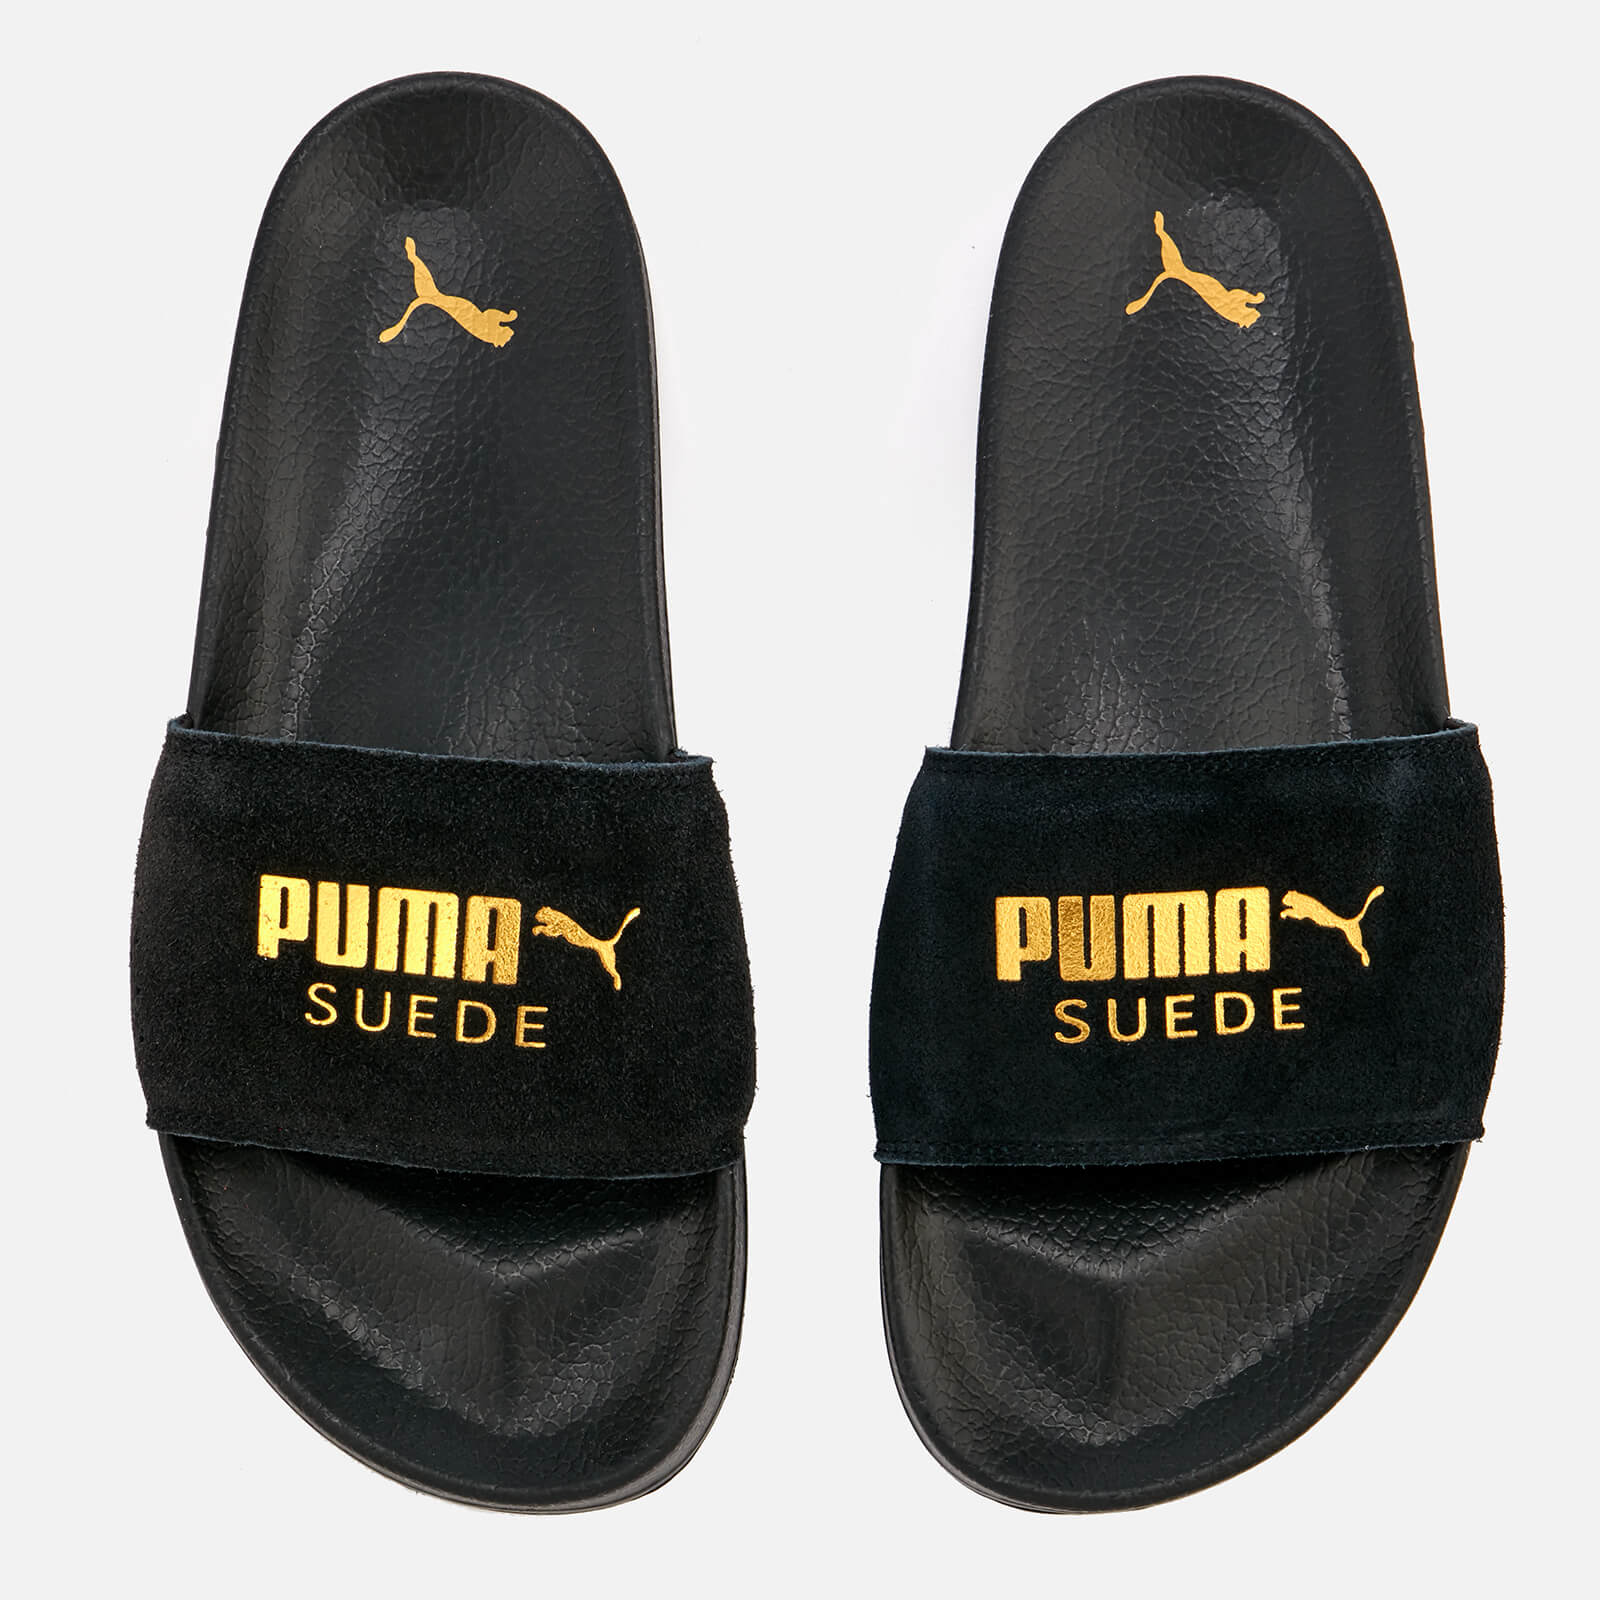 quality design 41826 a0e6e Puma Leadcat Suede Slide Sandals - Puma Black/Puma Team Gold